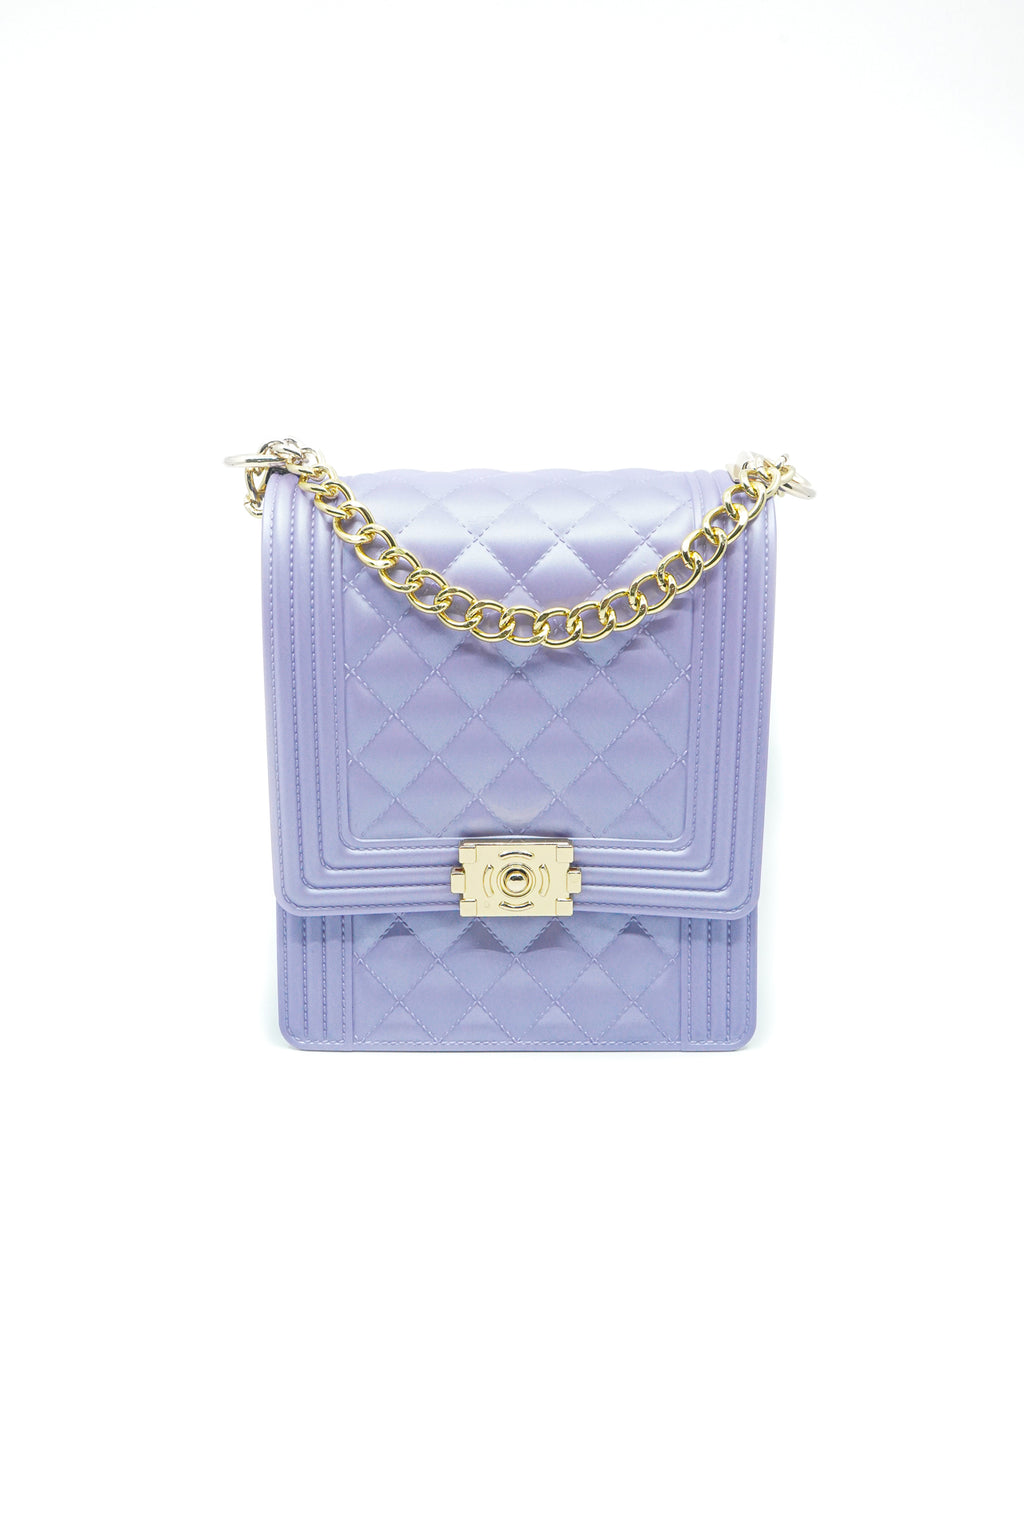 Rectangle Quilted Jelly Bag in Lavender - Fashion House USA